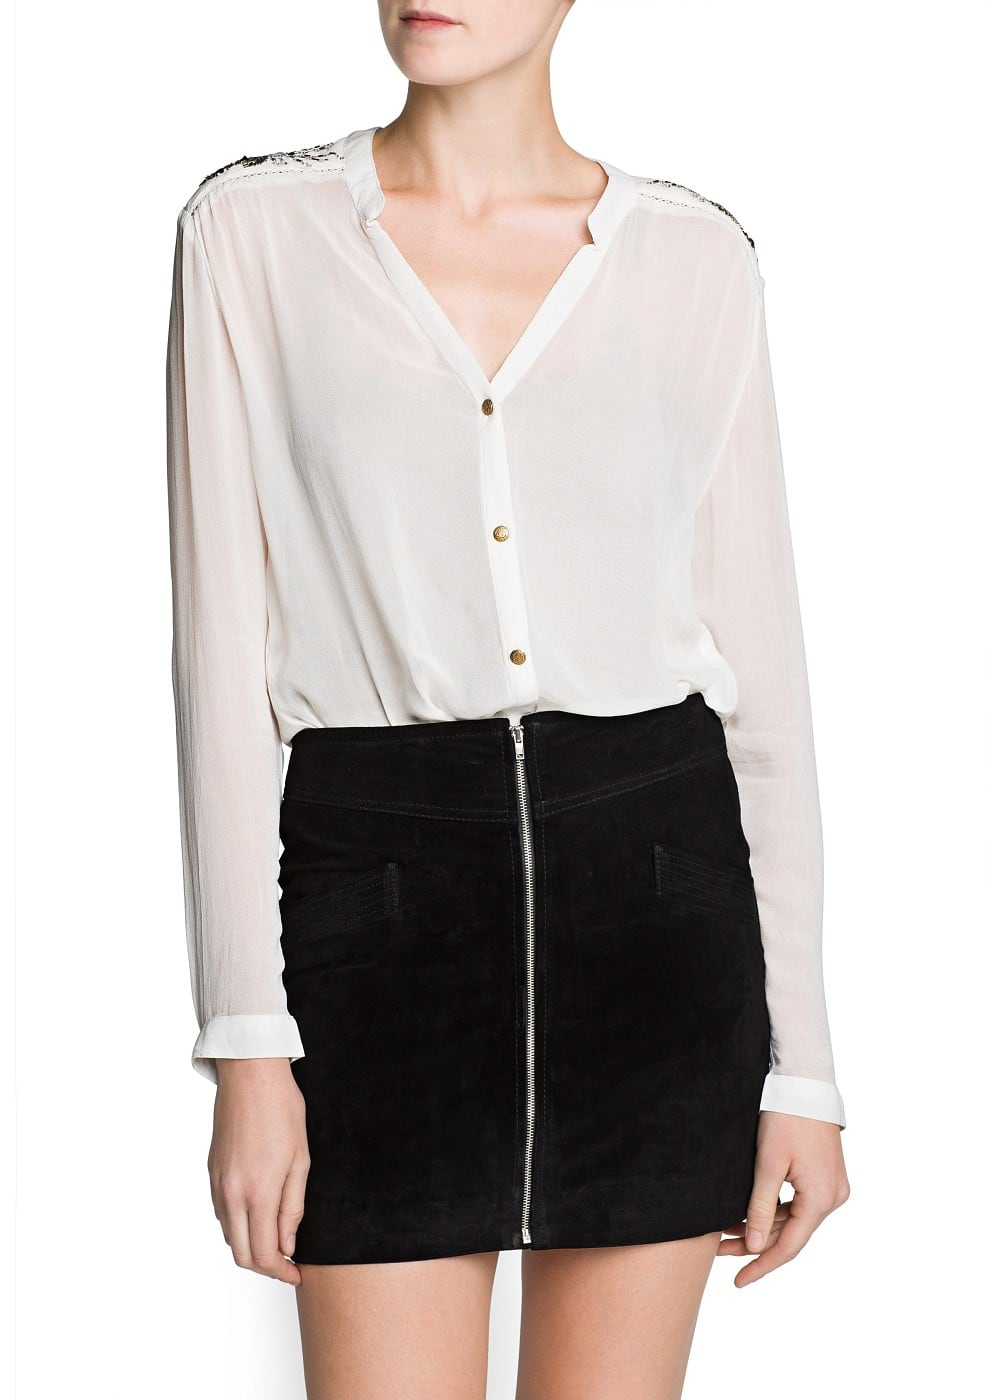 Embellished shoulder chiffon shirt